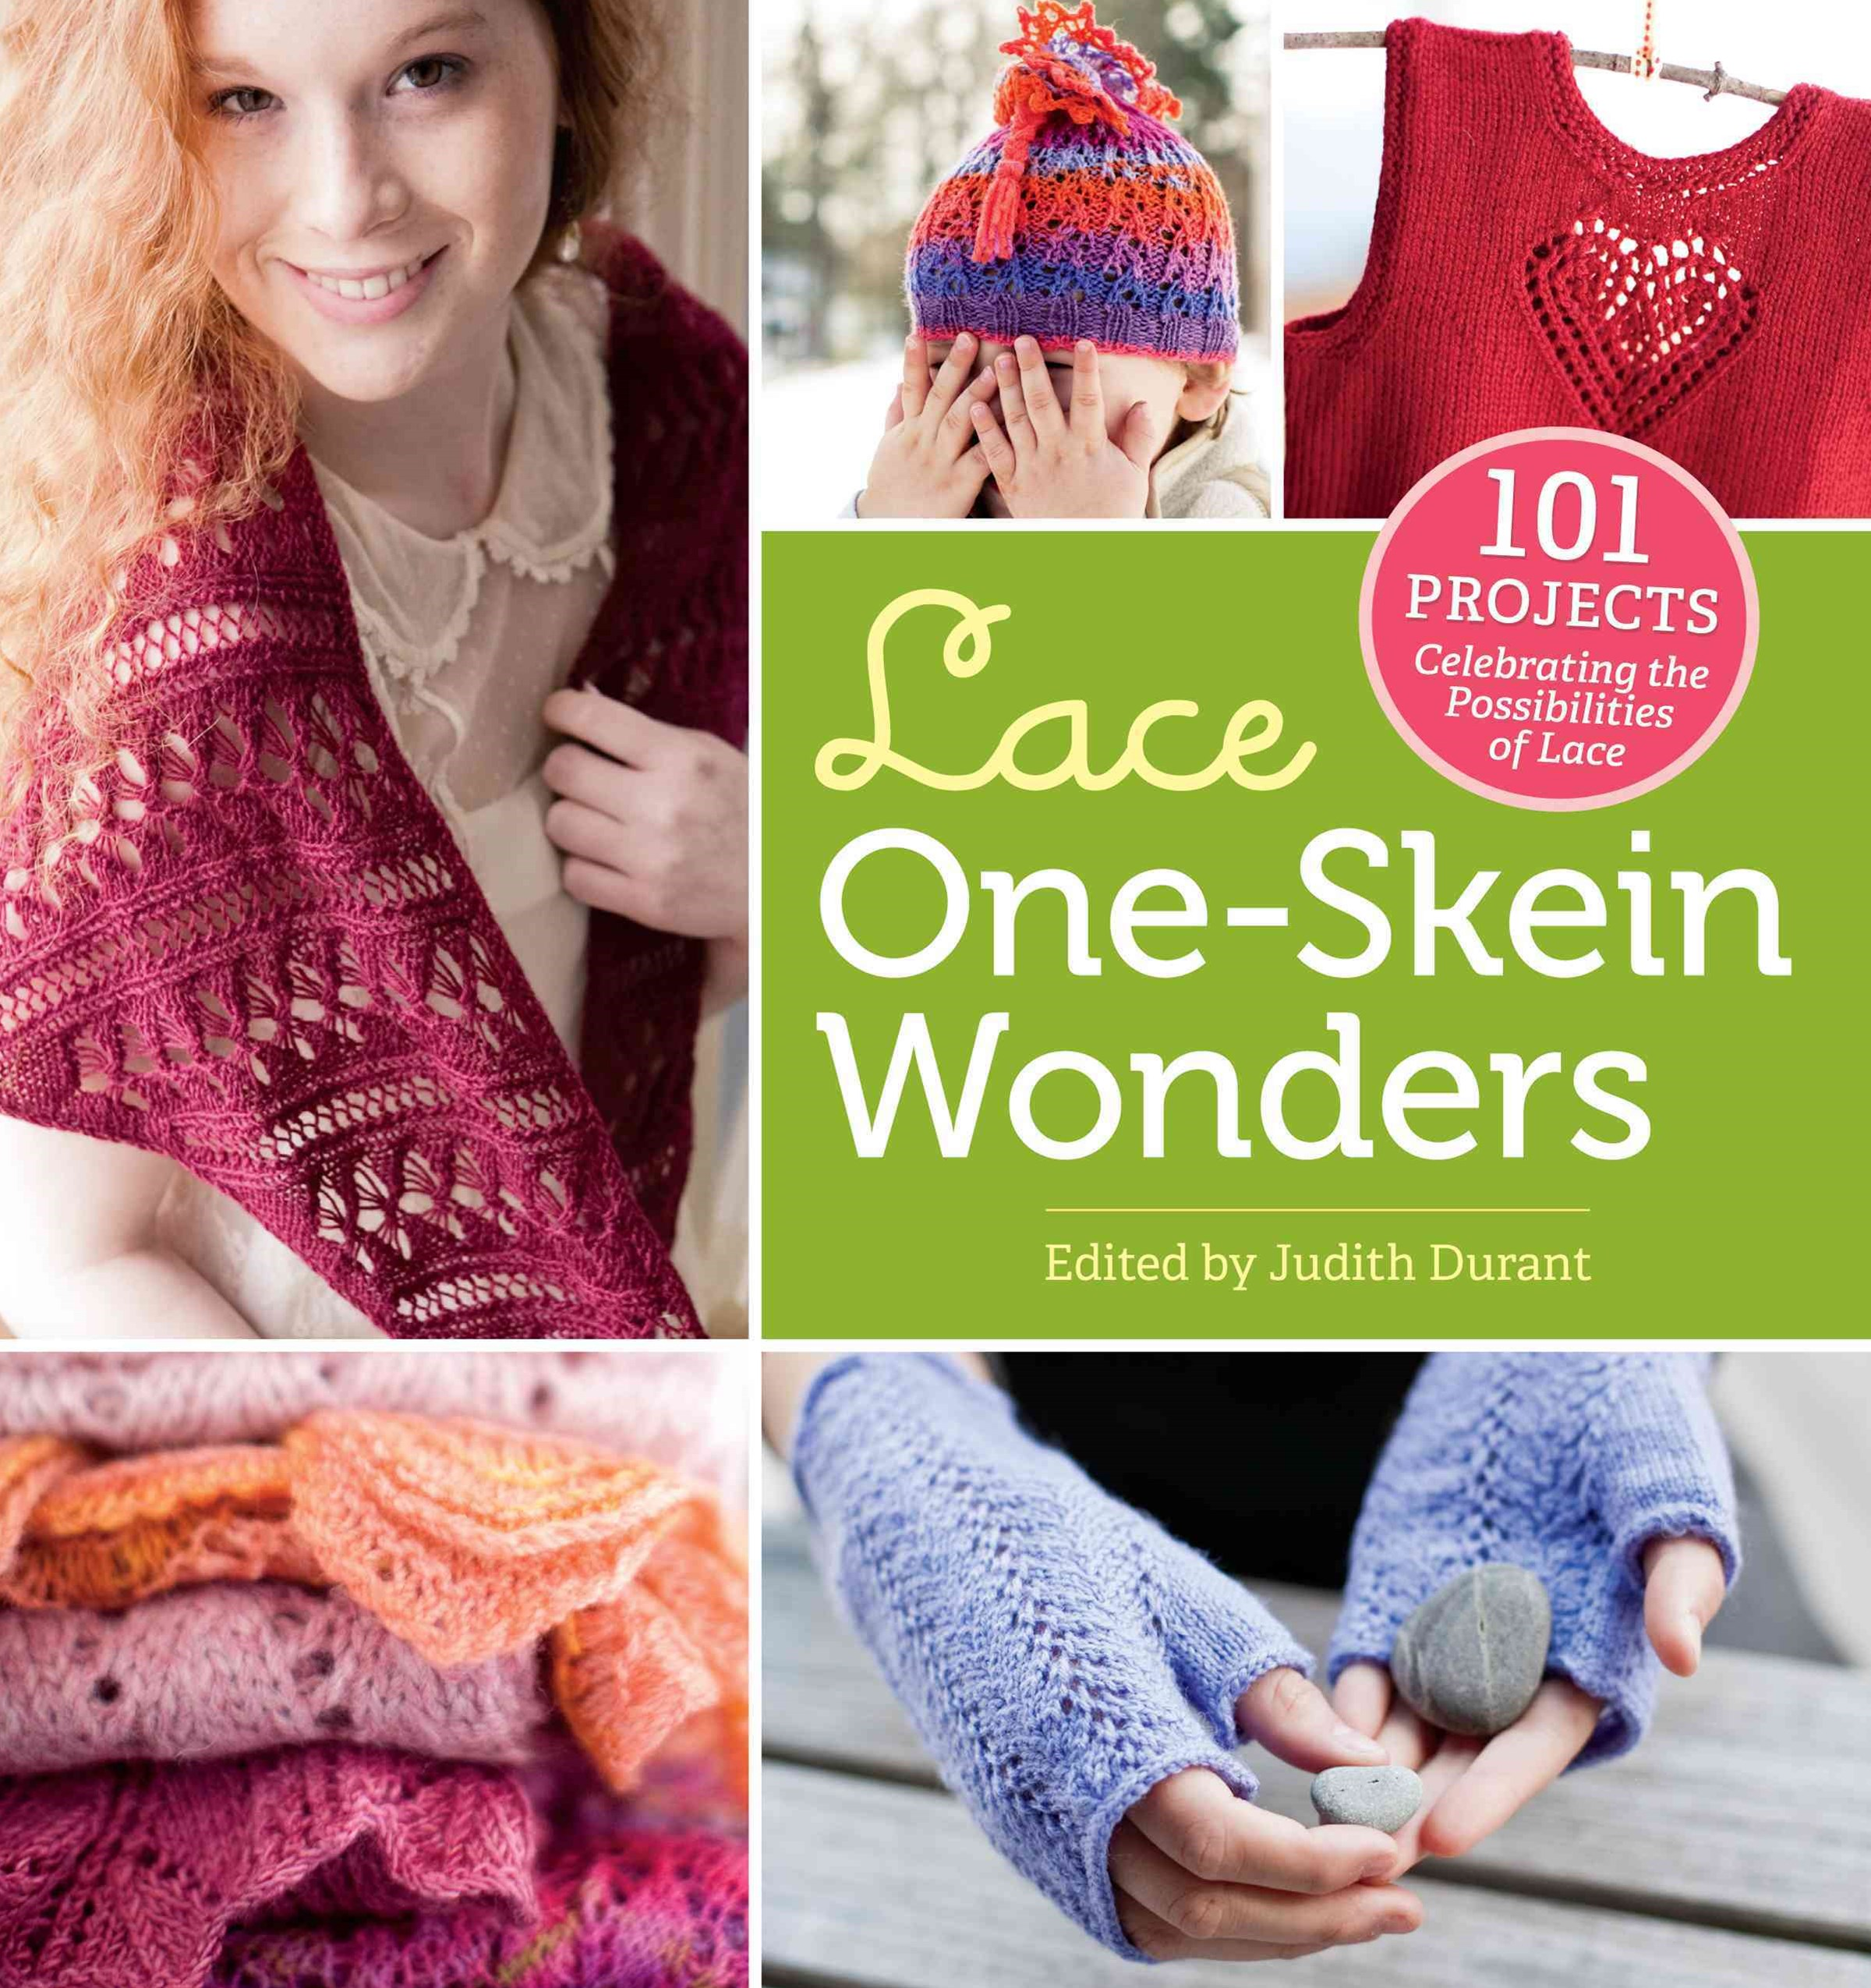 Lace One-Skein Wonders(R)